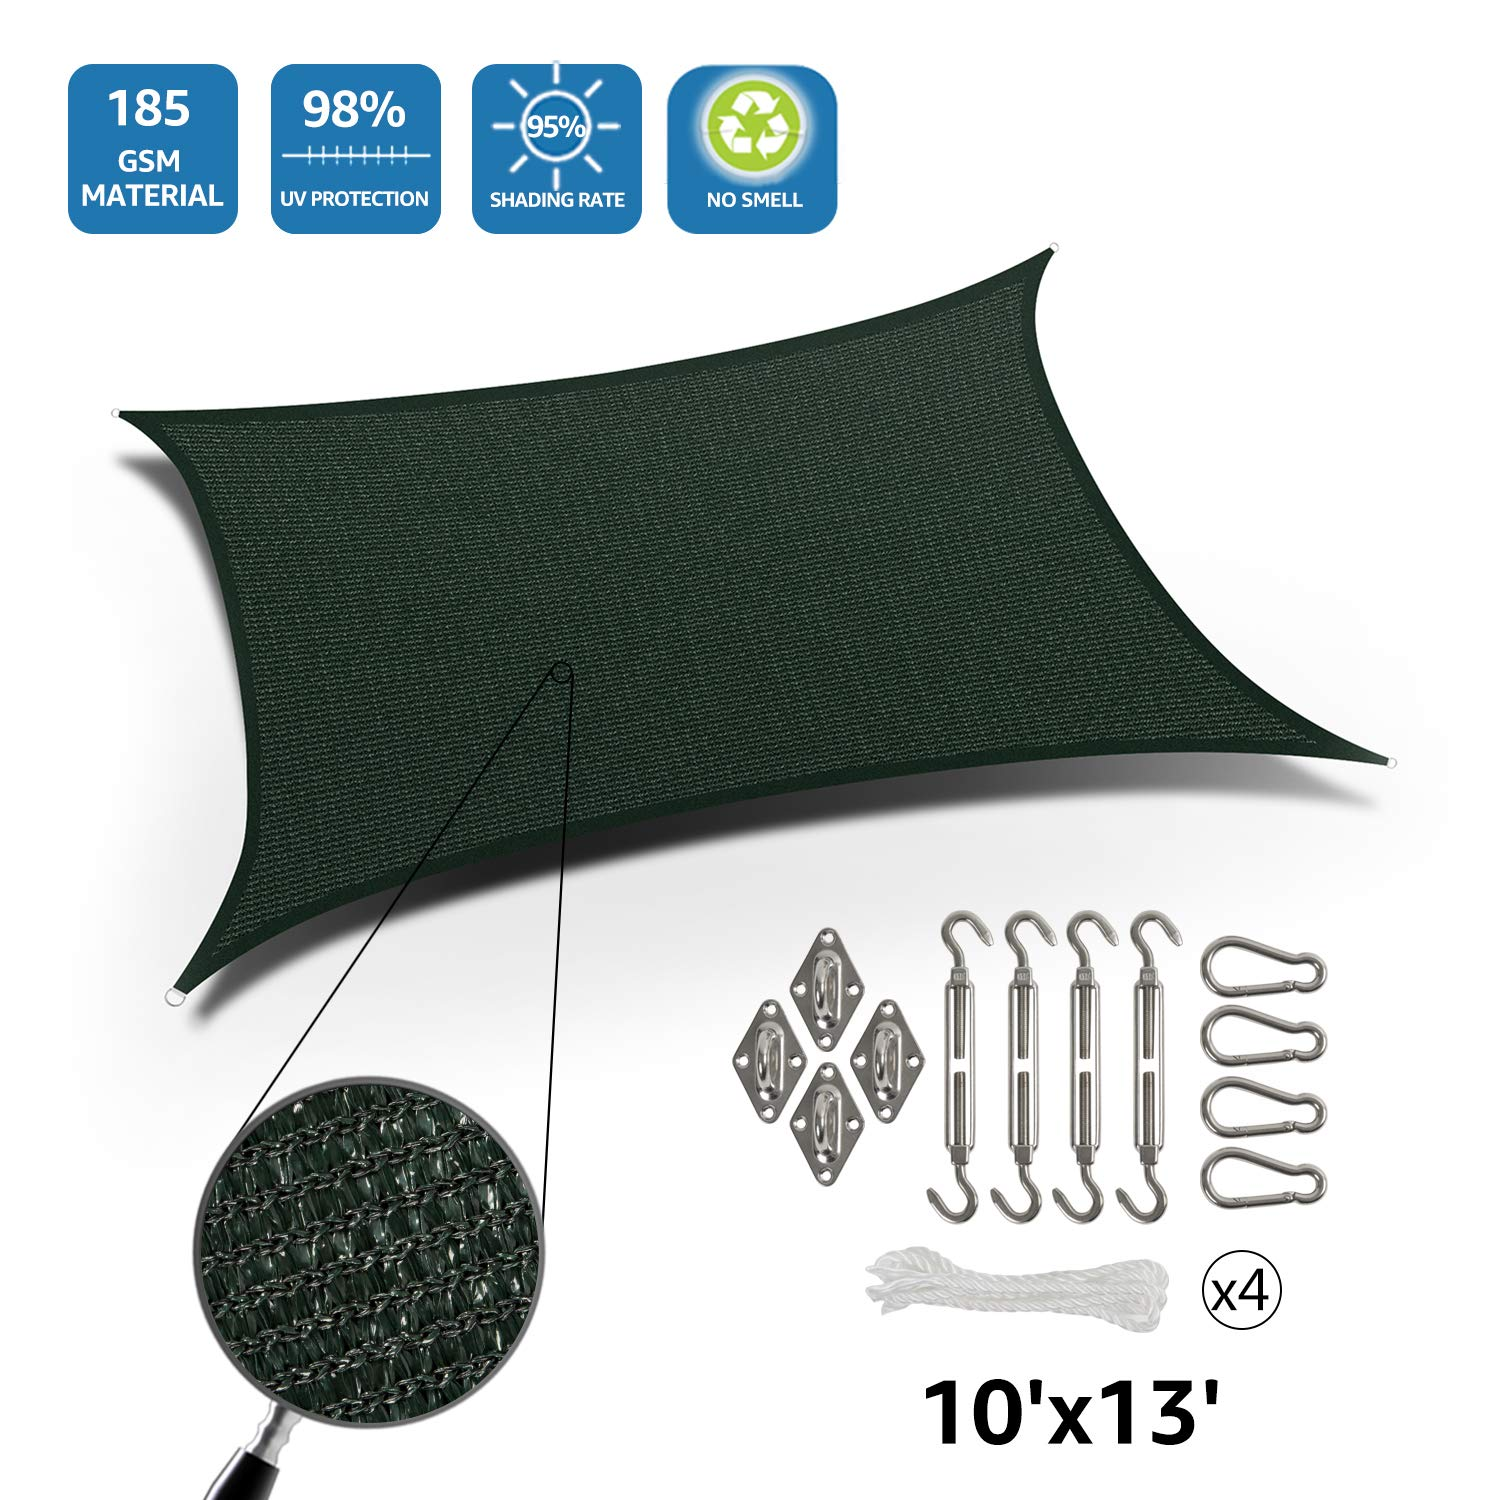 DOEWORKS Rectangle 10' X 13' Sun Shade Sail with Stainless Steel Hardware Kit, UV Block for Outdoor Patio Garden, Green by DOEWORKS